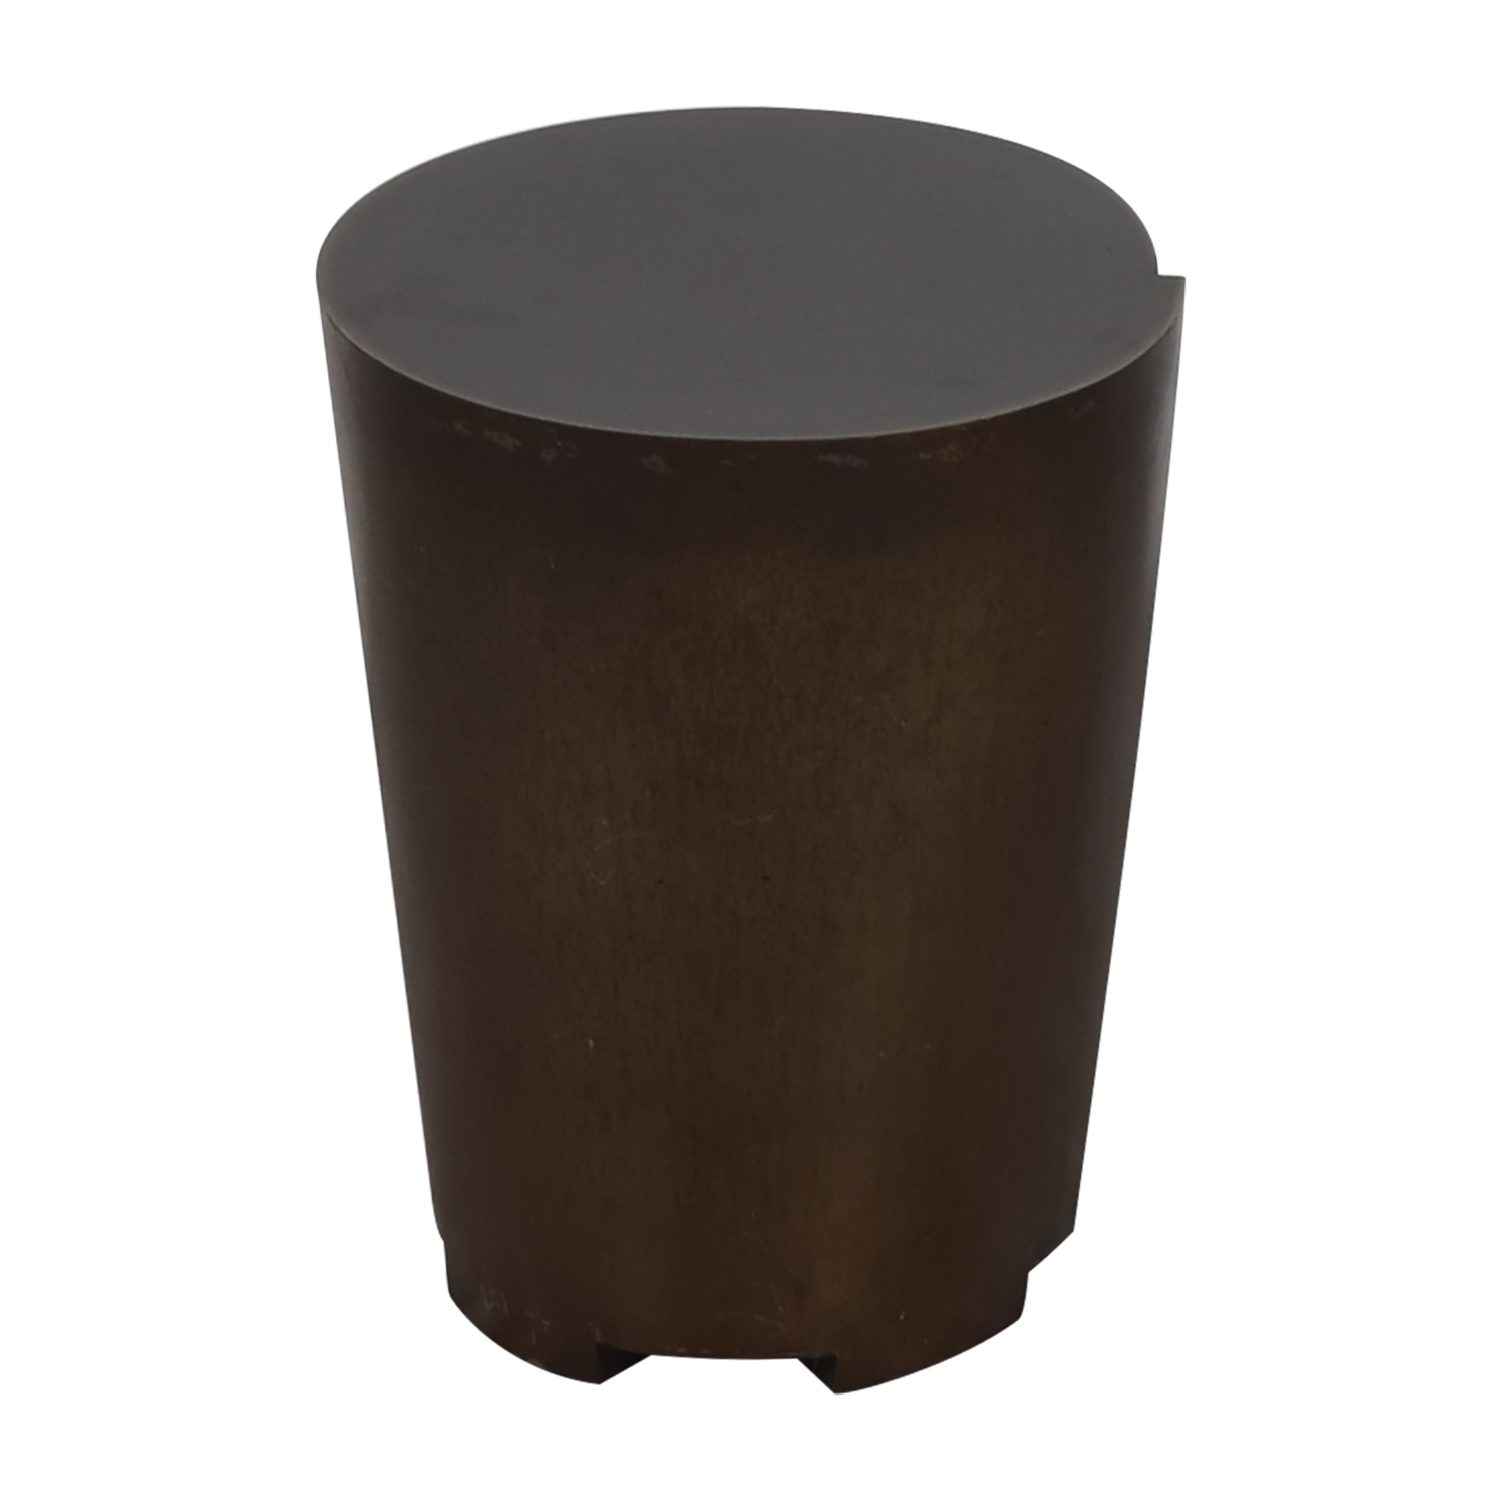 Crate & Barrel Drum Metal Table / Accent Tables